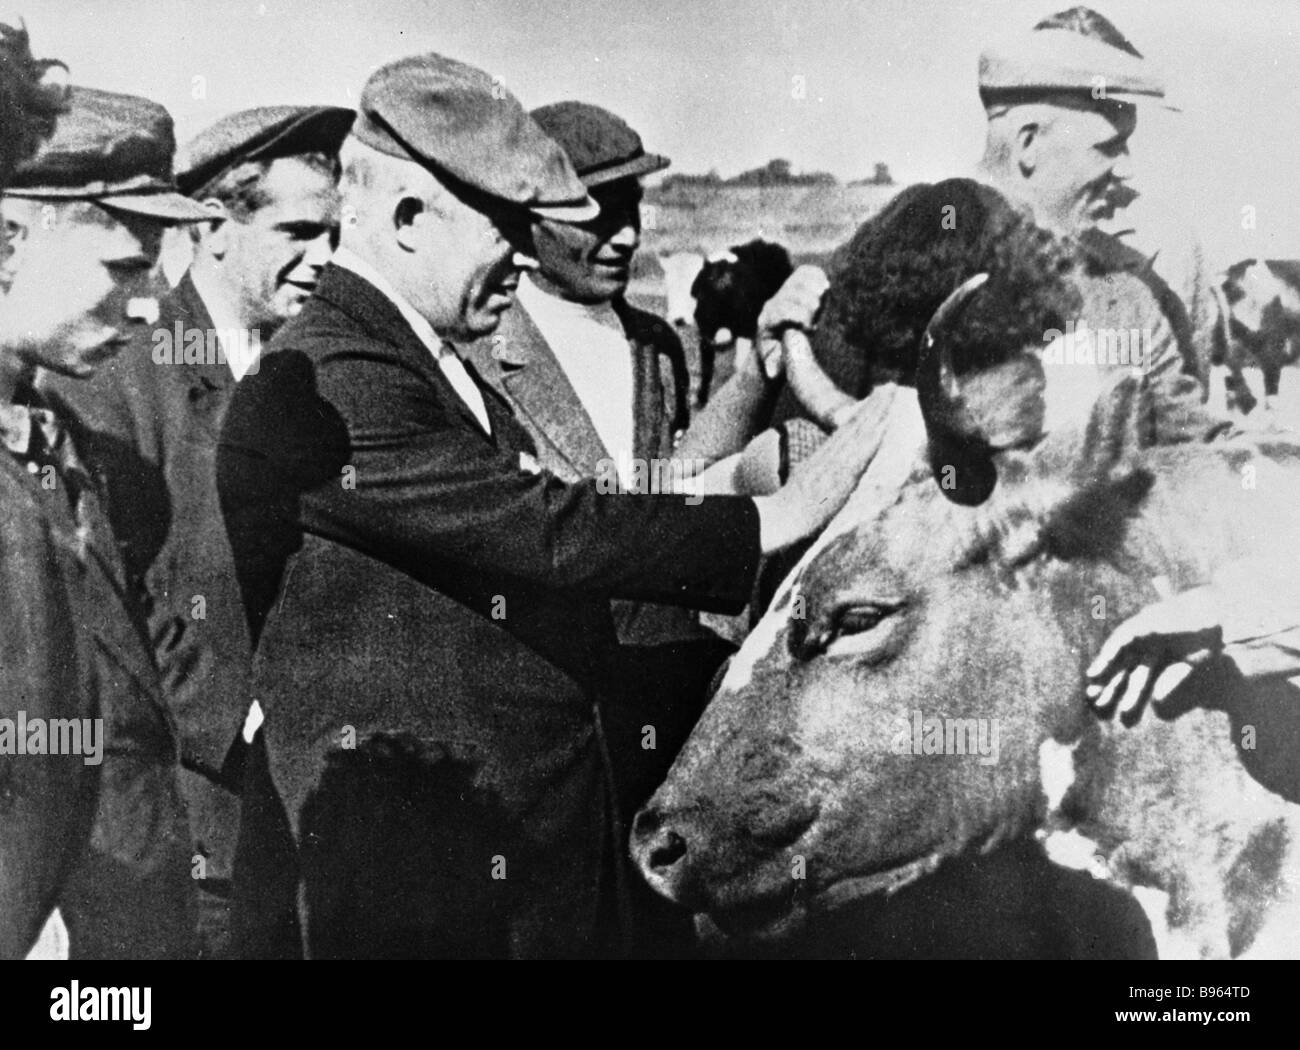 Nikita Khrushchev center discussing stock breeding problems with farmers - Stock Image